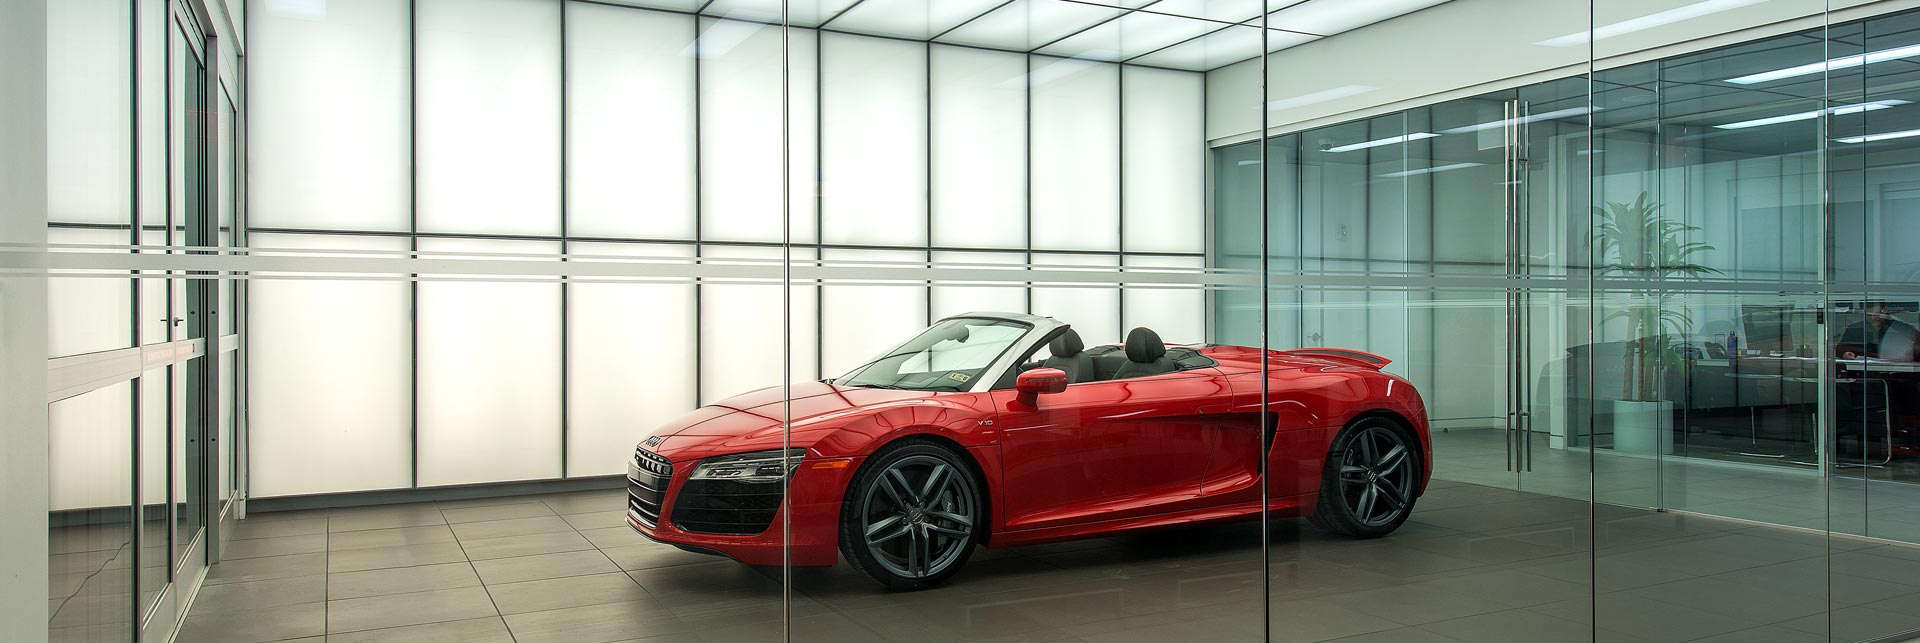 Audi Dealership, Houston TX, USA